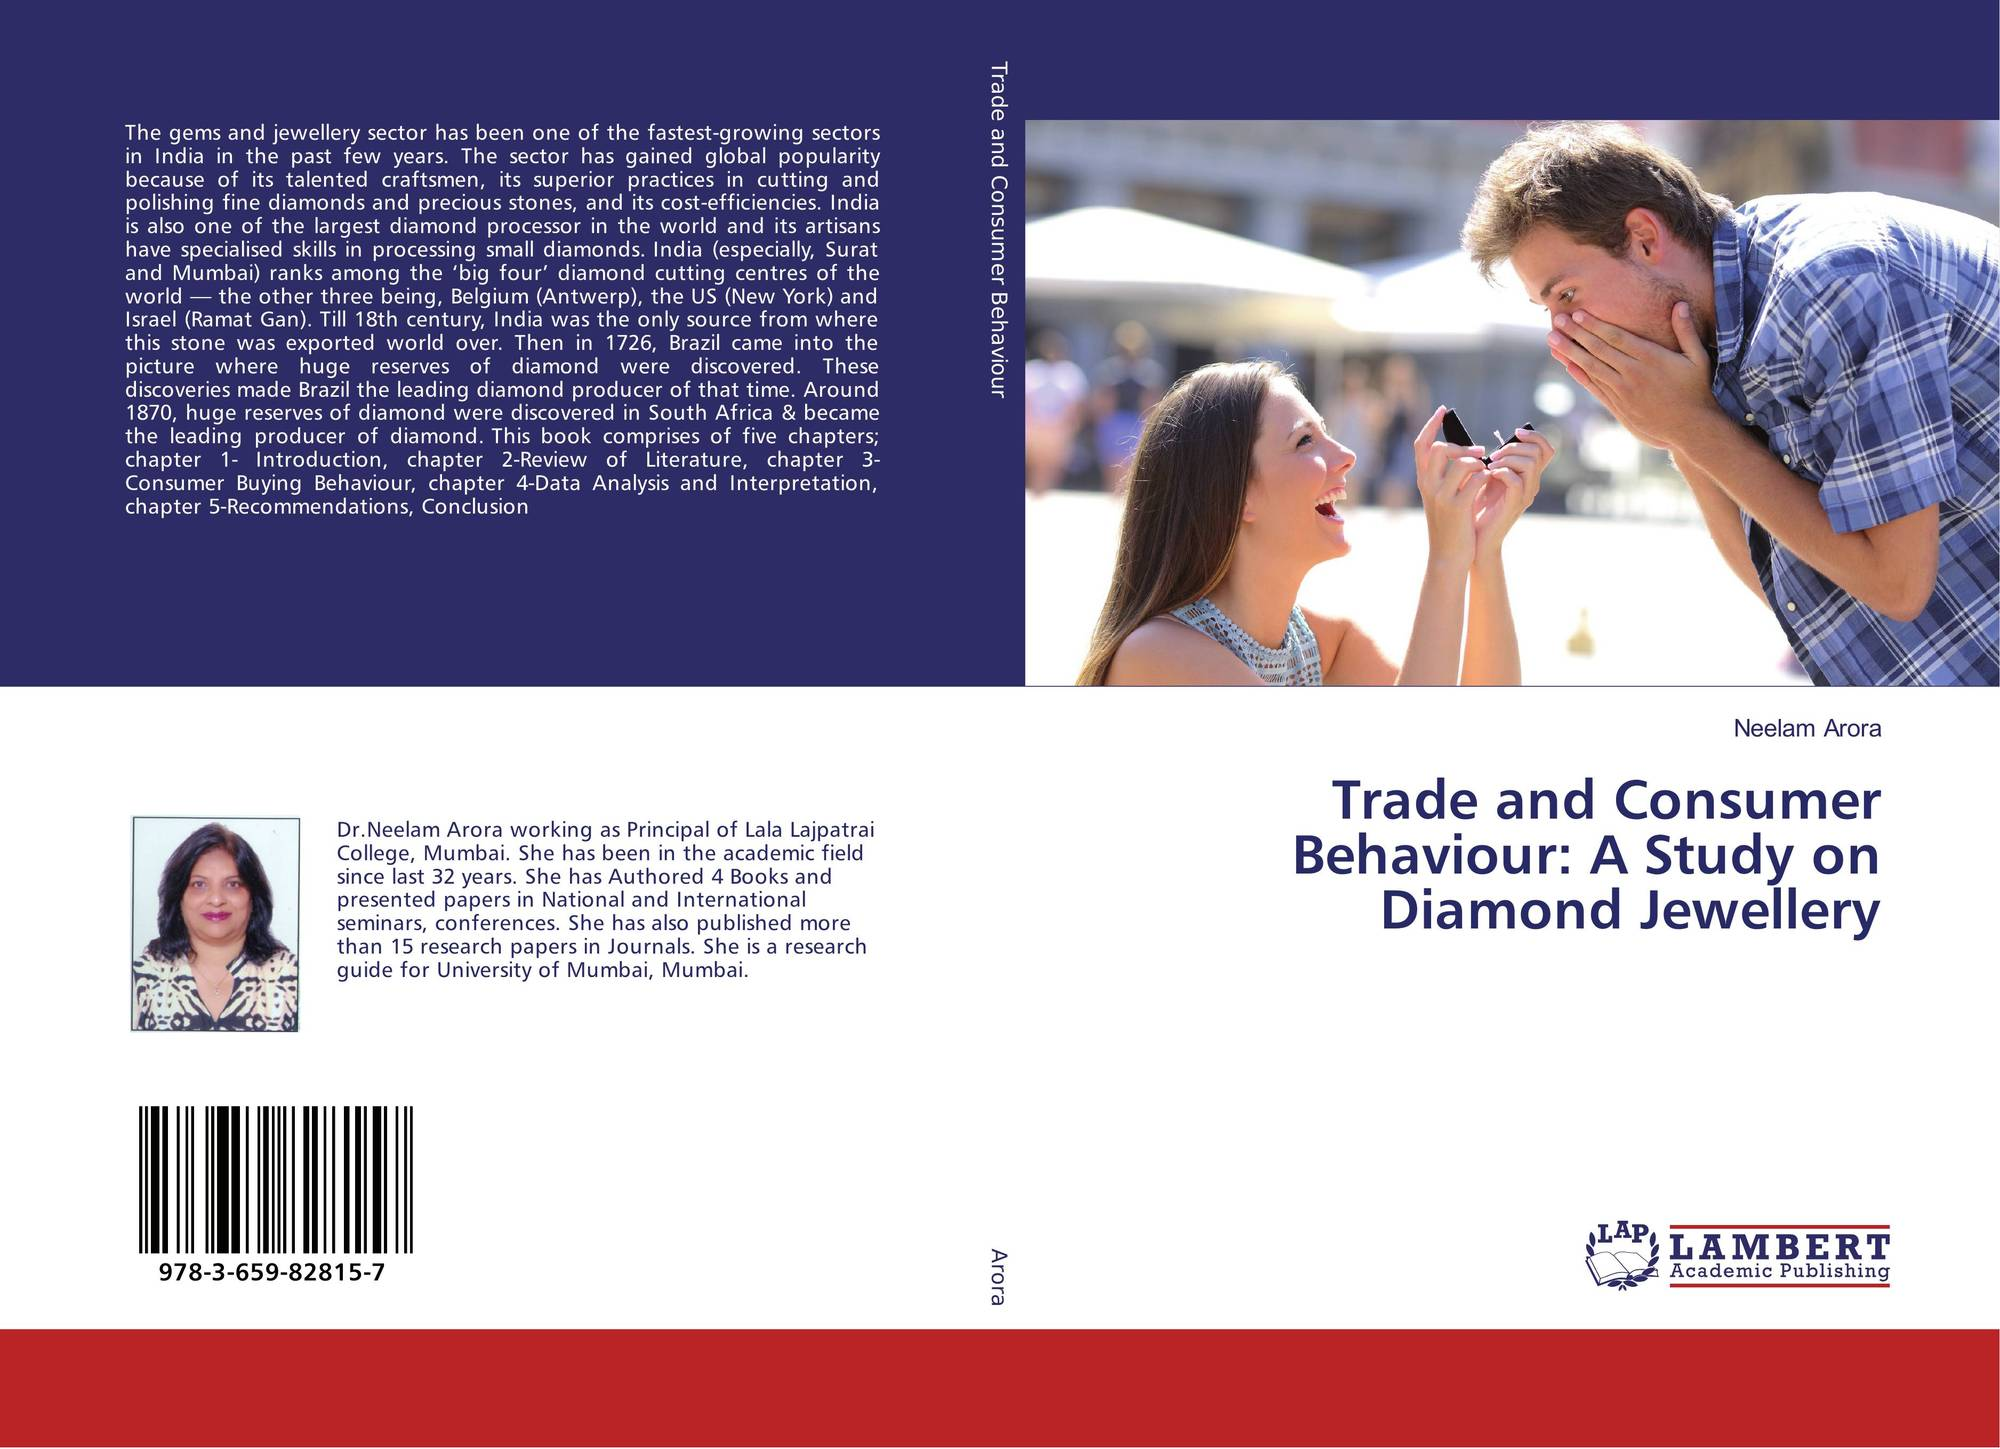 study of on premise trade and Political economy: political economy, branch of social science that studies the relationships between individuals and society and between markets and the state, using a diverse set of tools and methods drawn largely from economics, political science, and sociology.